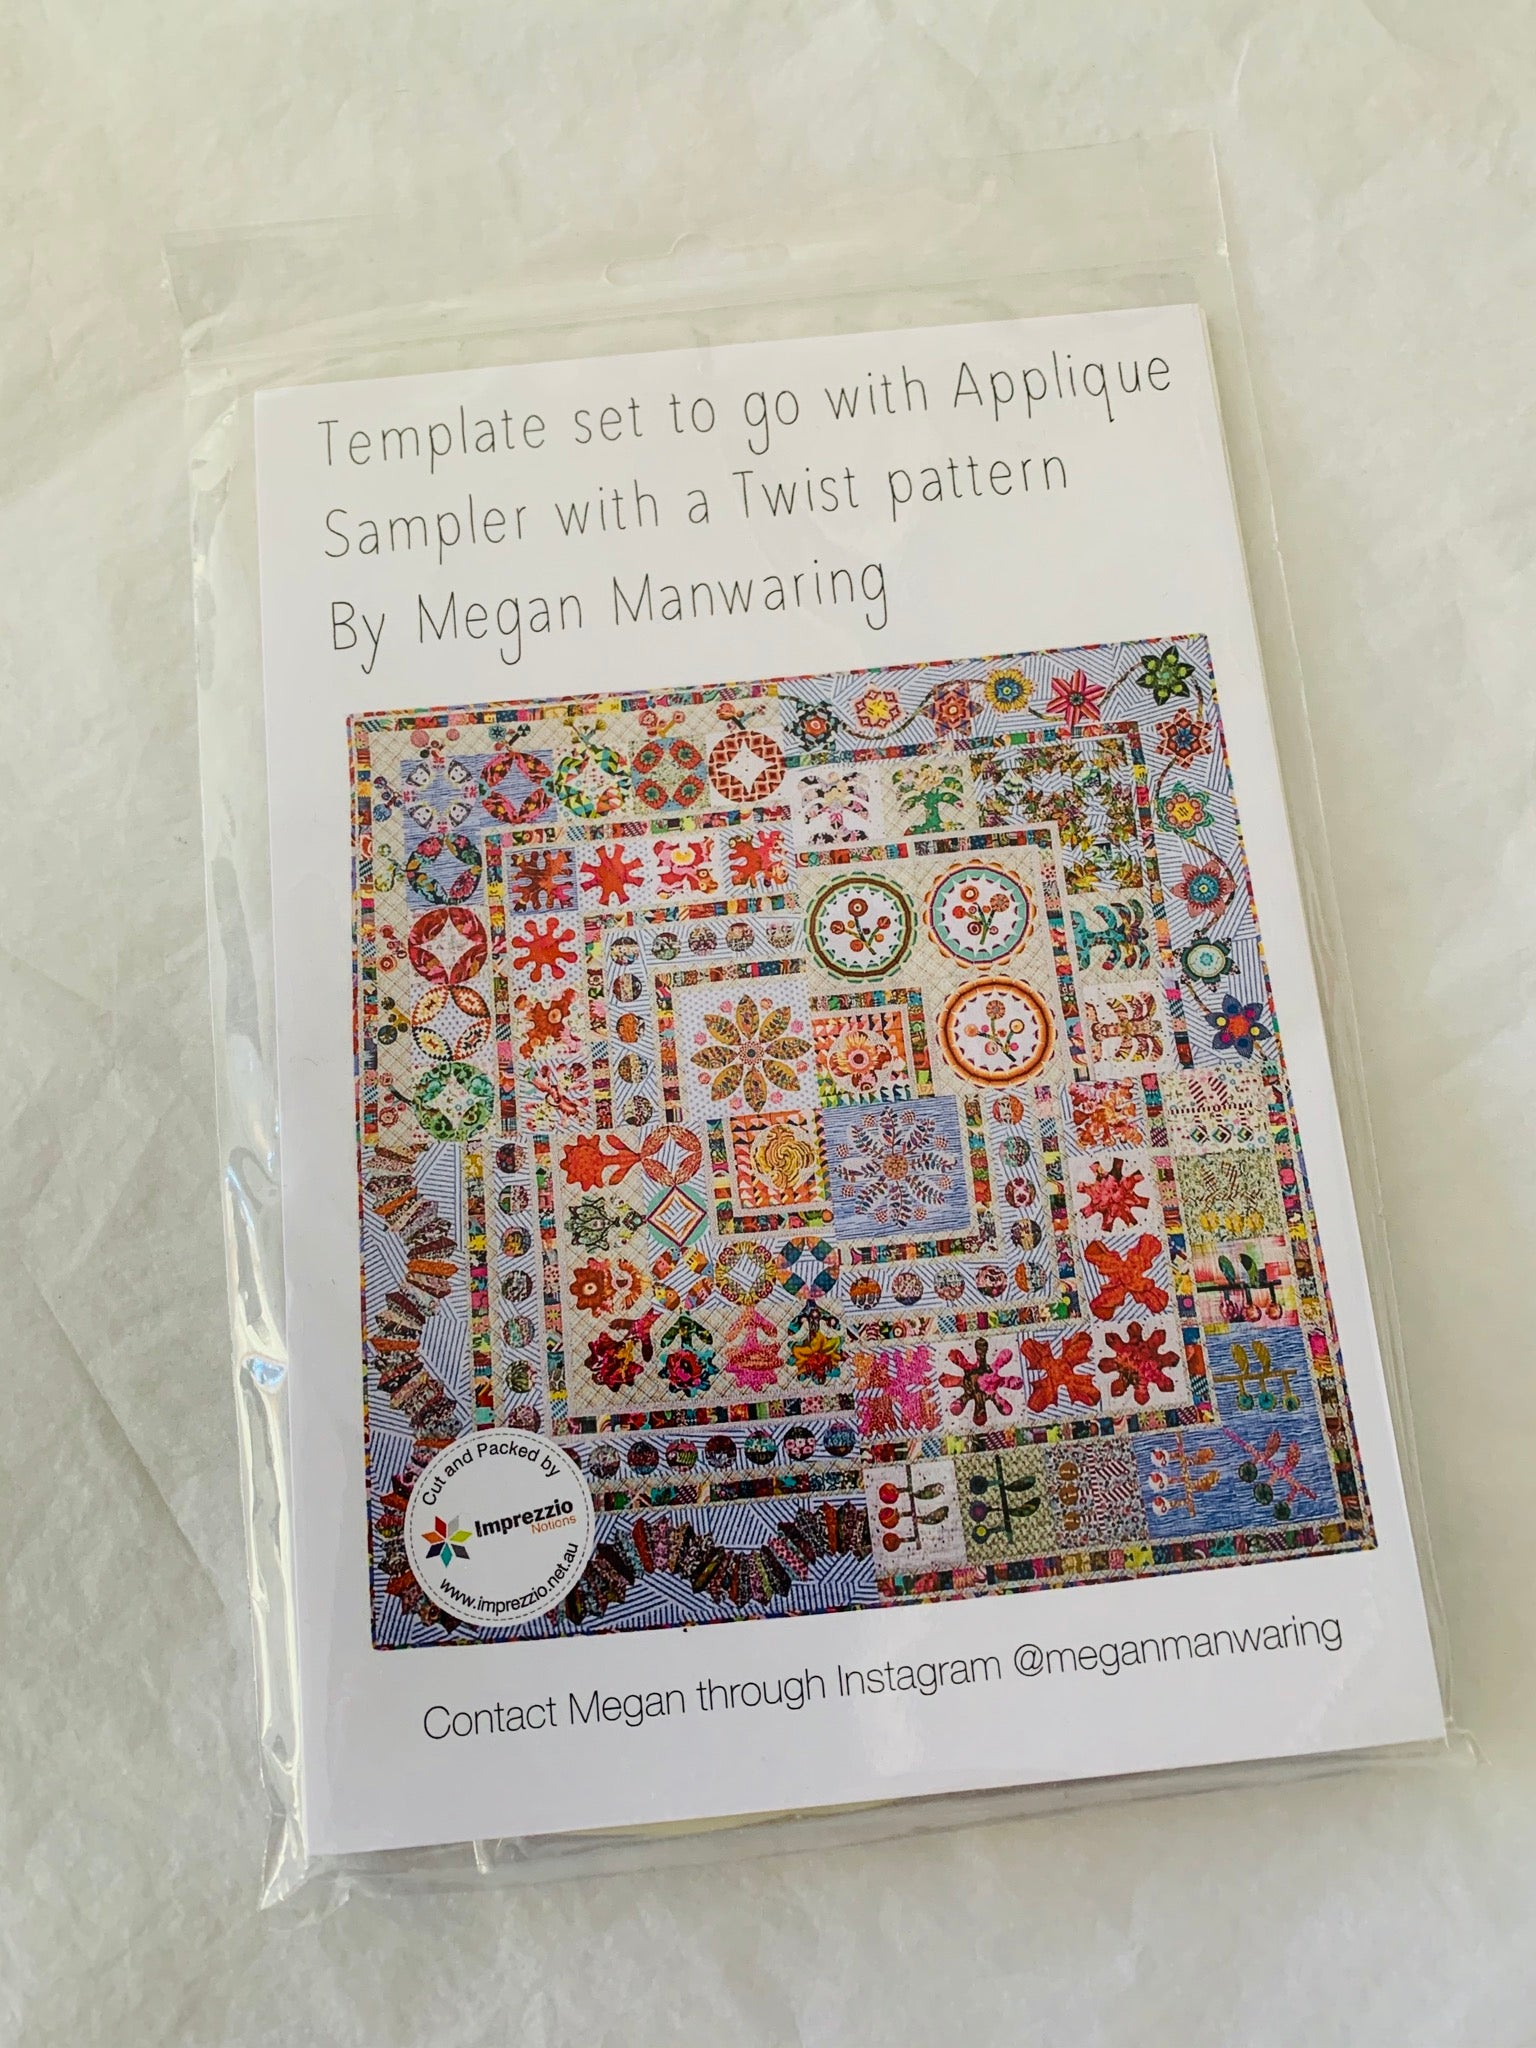 Megan Manwaring: Template set to go with Applique Sampler with a twist pattern